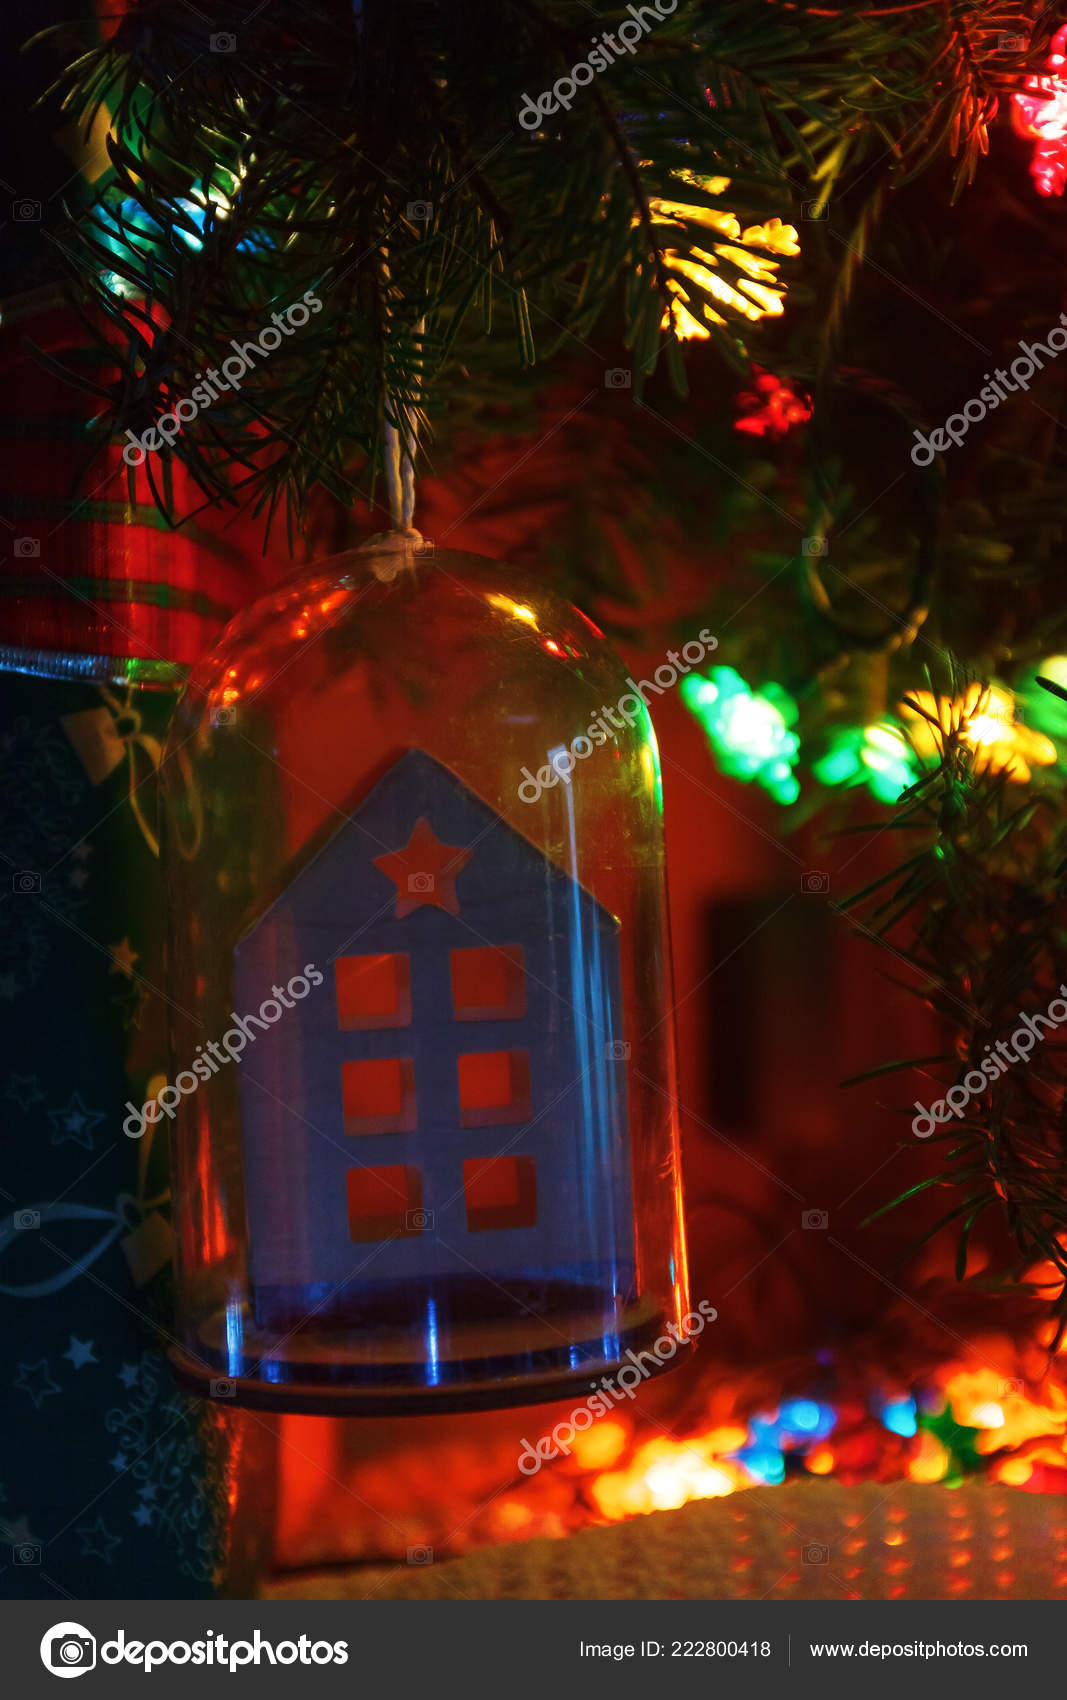 Colorful Christmas Lights On House.Tree Toy Shape House Star Angel Christmas Tree Colored